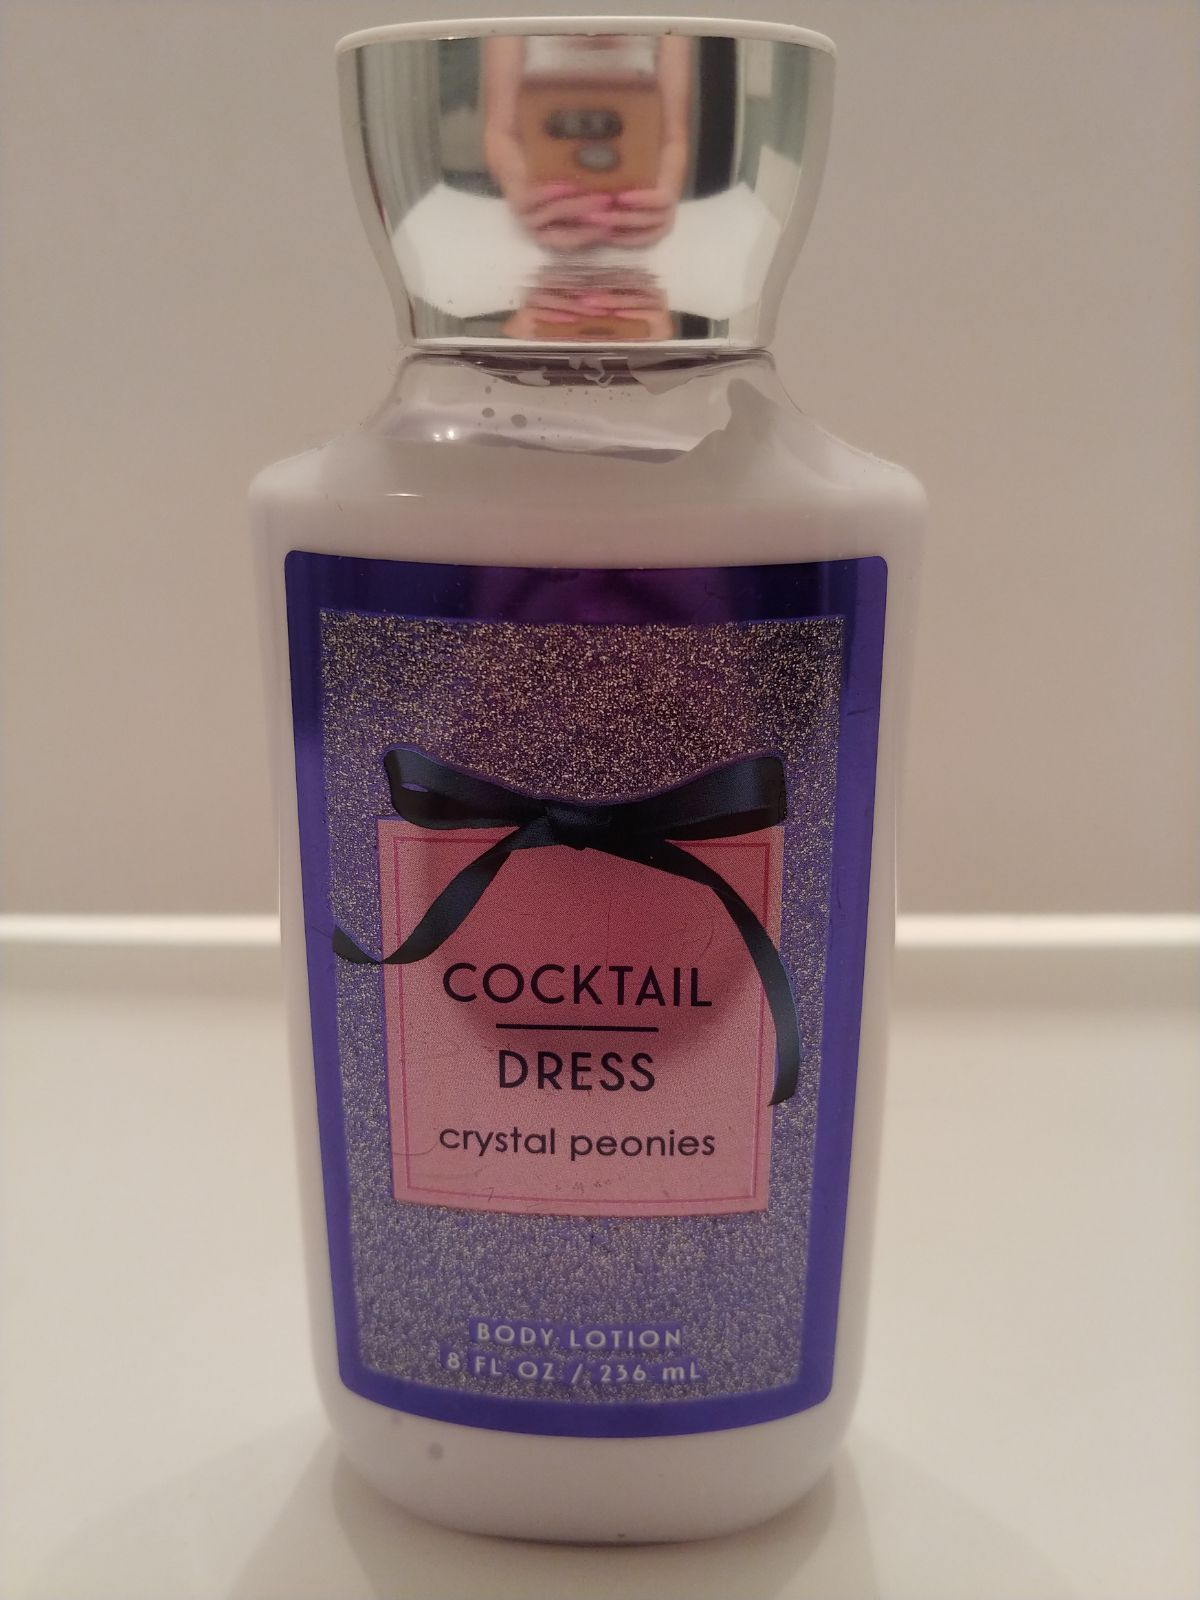 Cocktail Dress Body Lotion Bath And Body Works 8 Oz Key Notes Crystal Peonies Bright Mandarin Sheer Cedar And Velve Body Lotion Lotion Bath And Body Works [ 1600 x 1200 Pixel ]